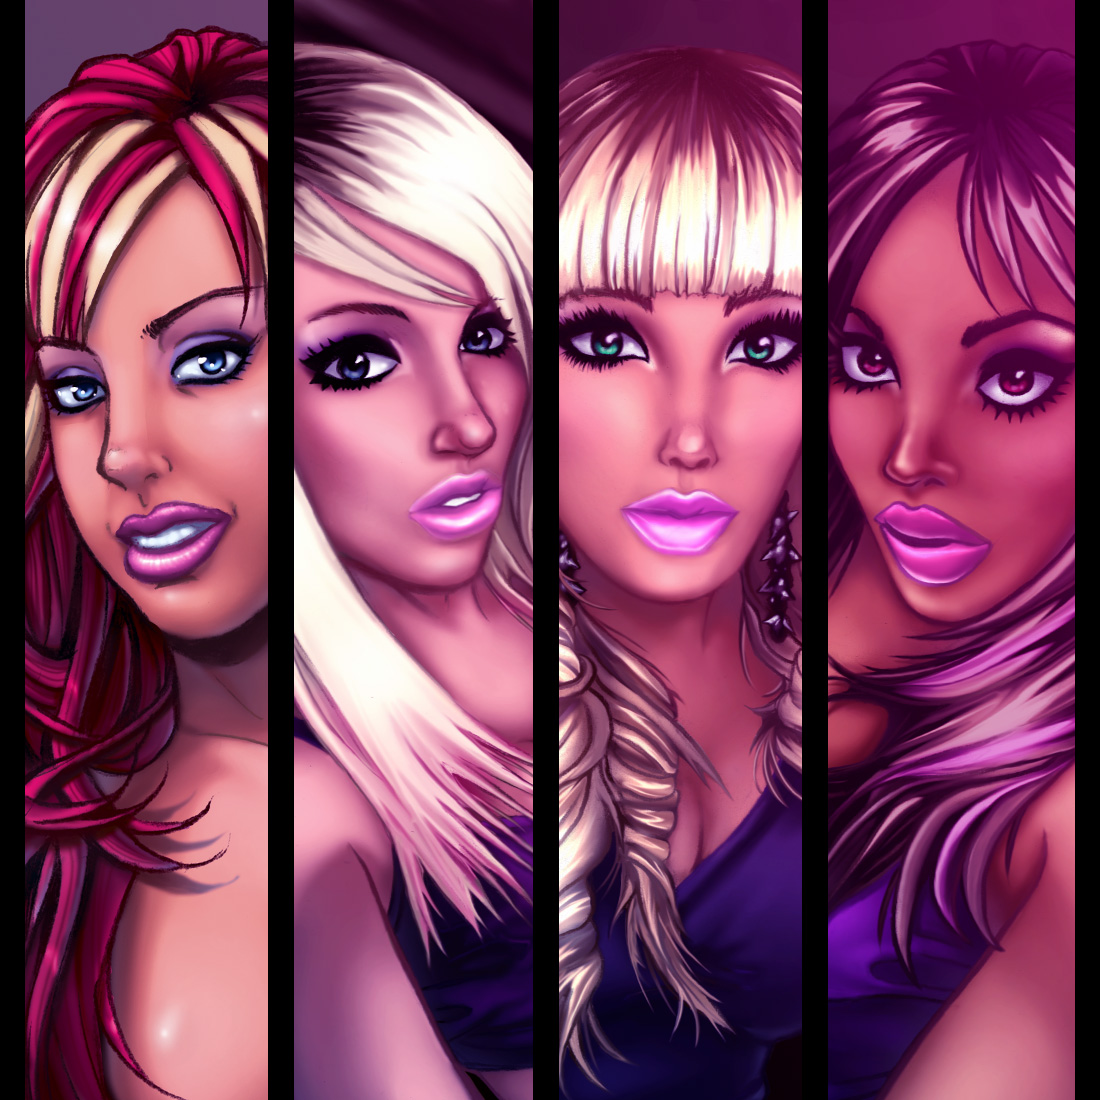 Pretty Girls Art